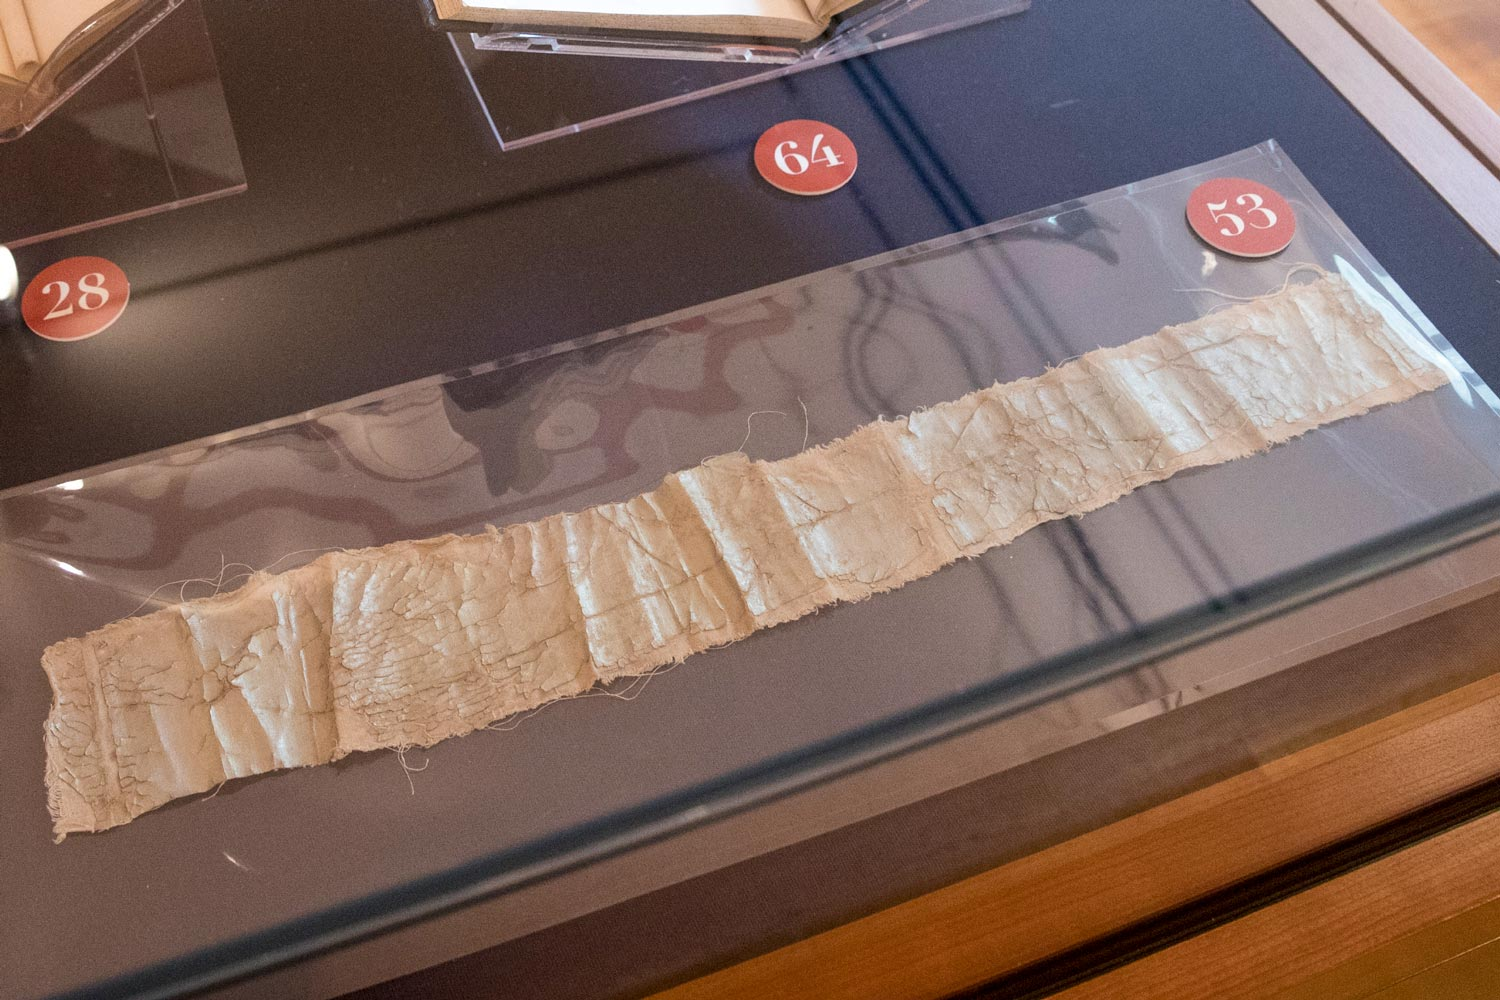 A strip of old fabric in a display case